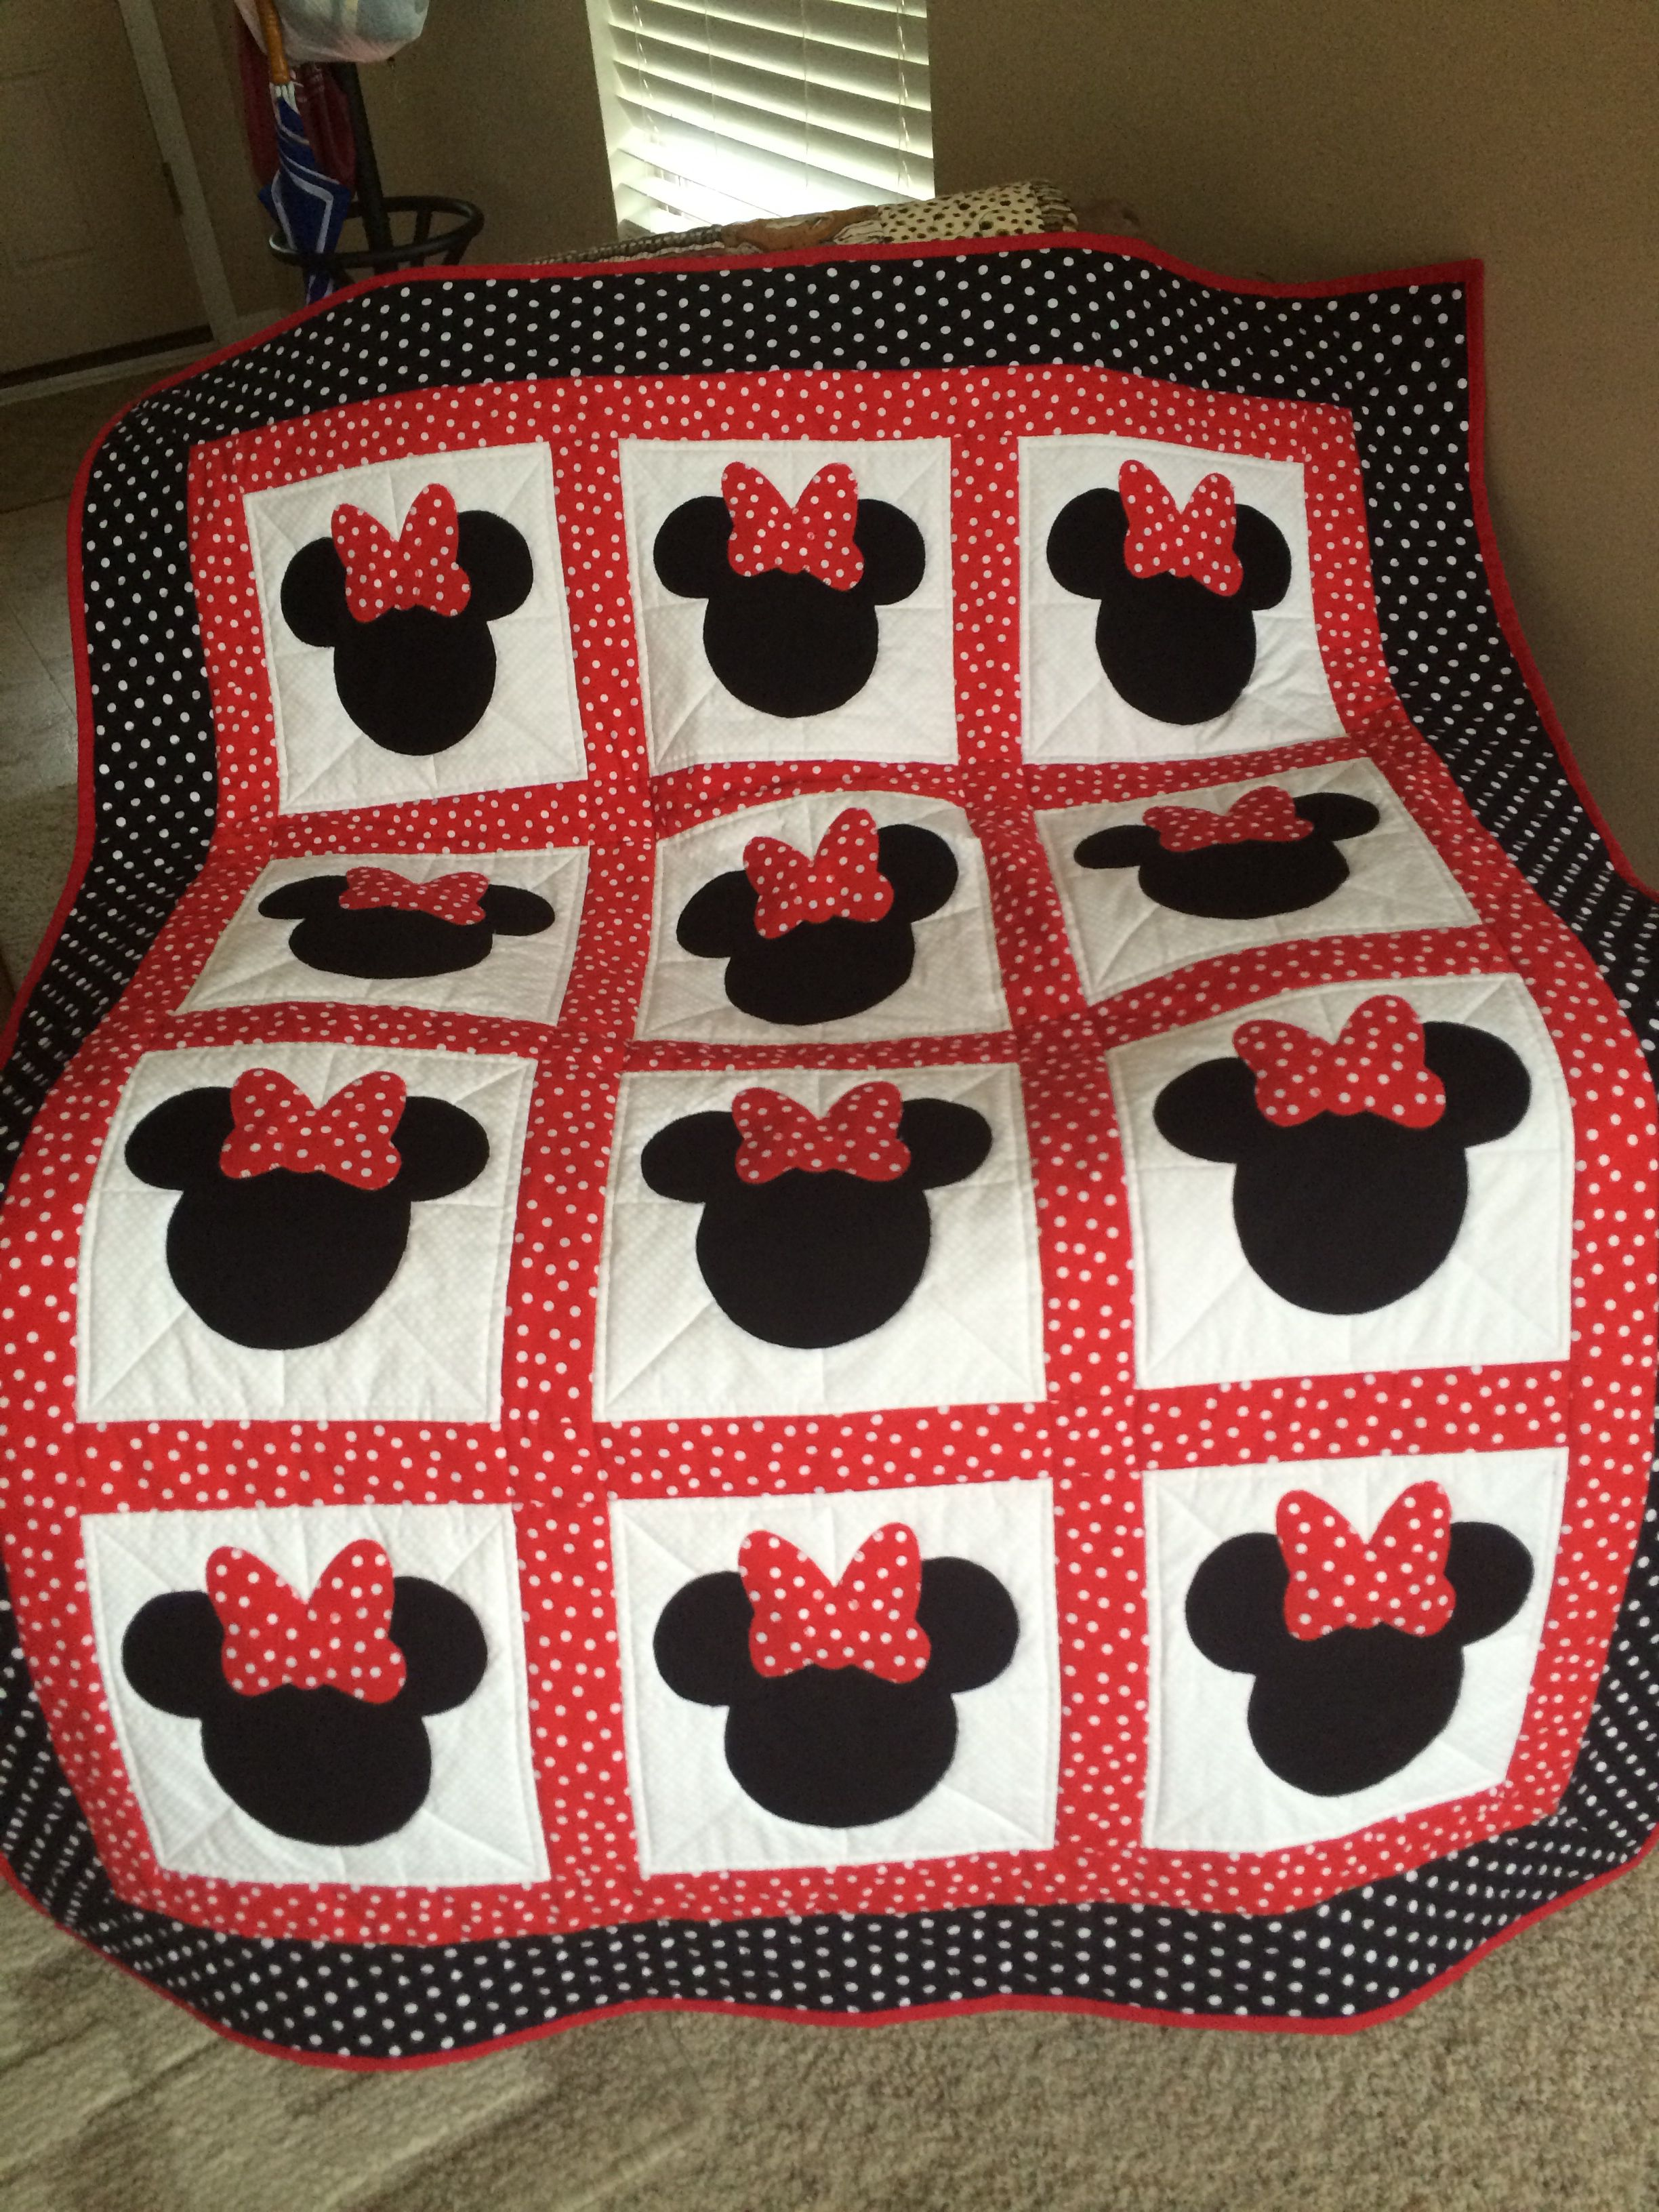 Minnie Mouse quilt Fell in love with the concept after seeing a similar one on